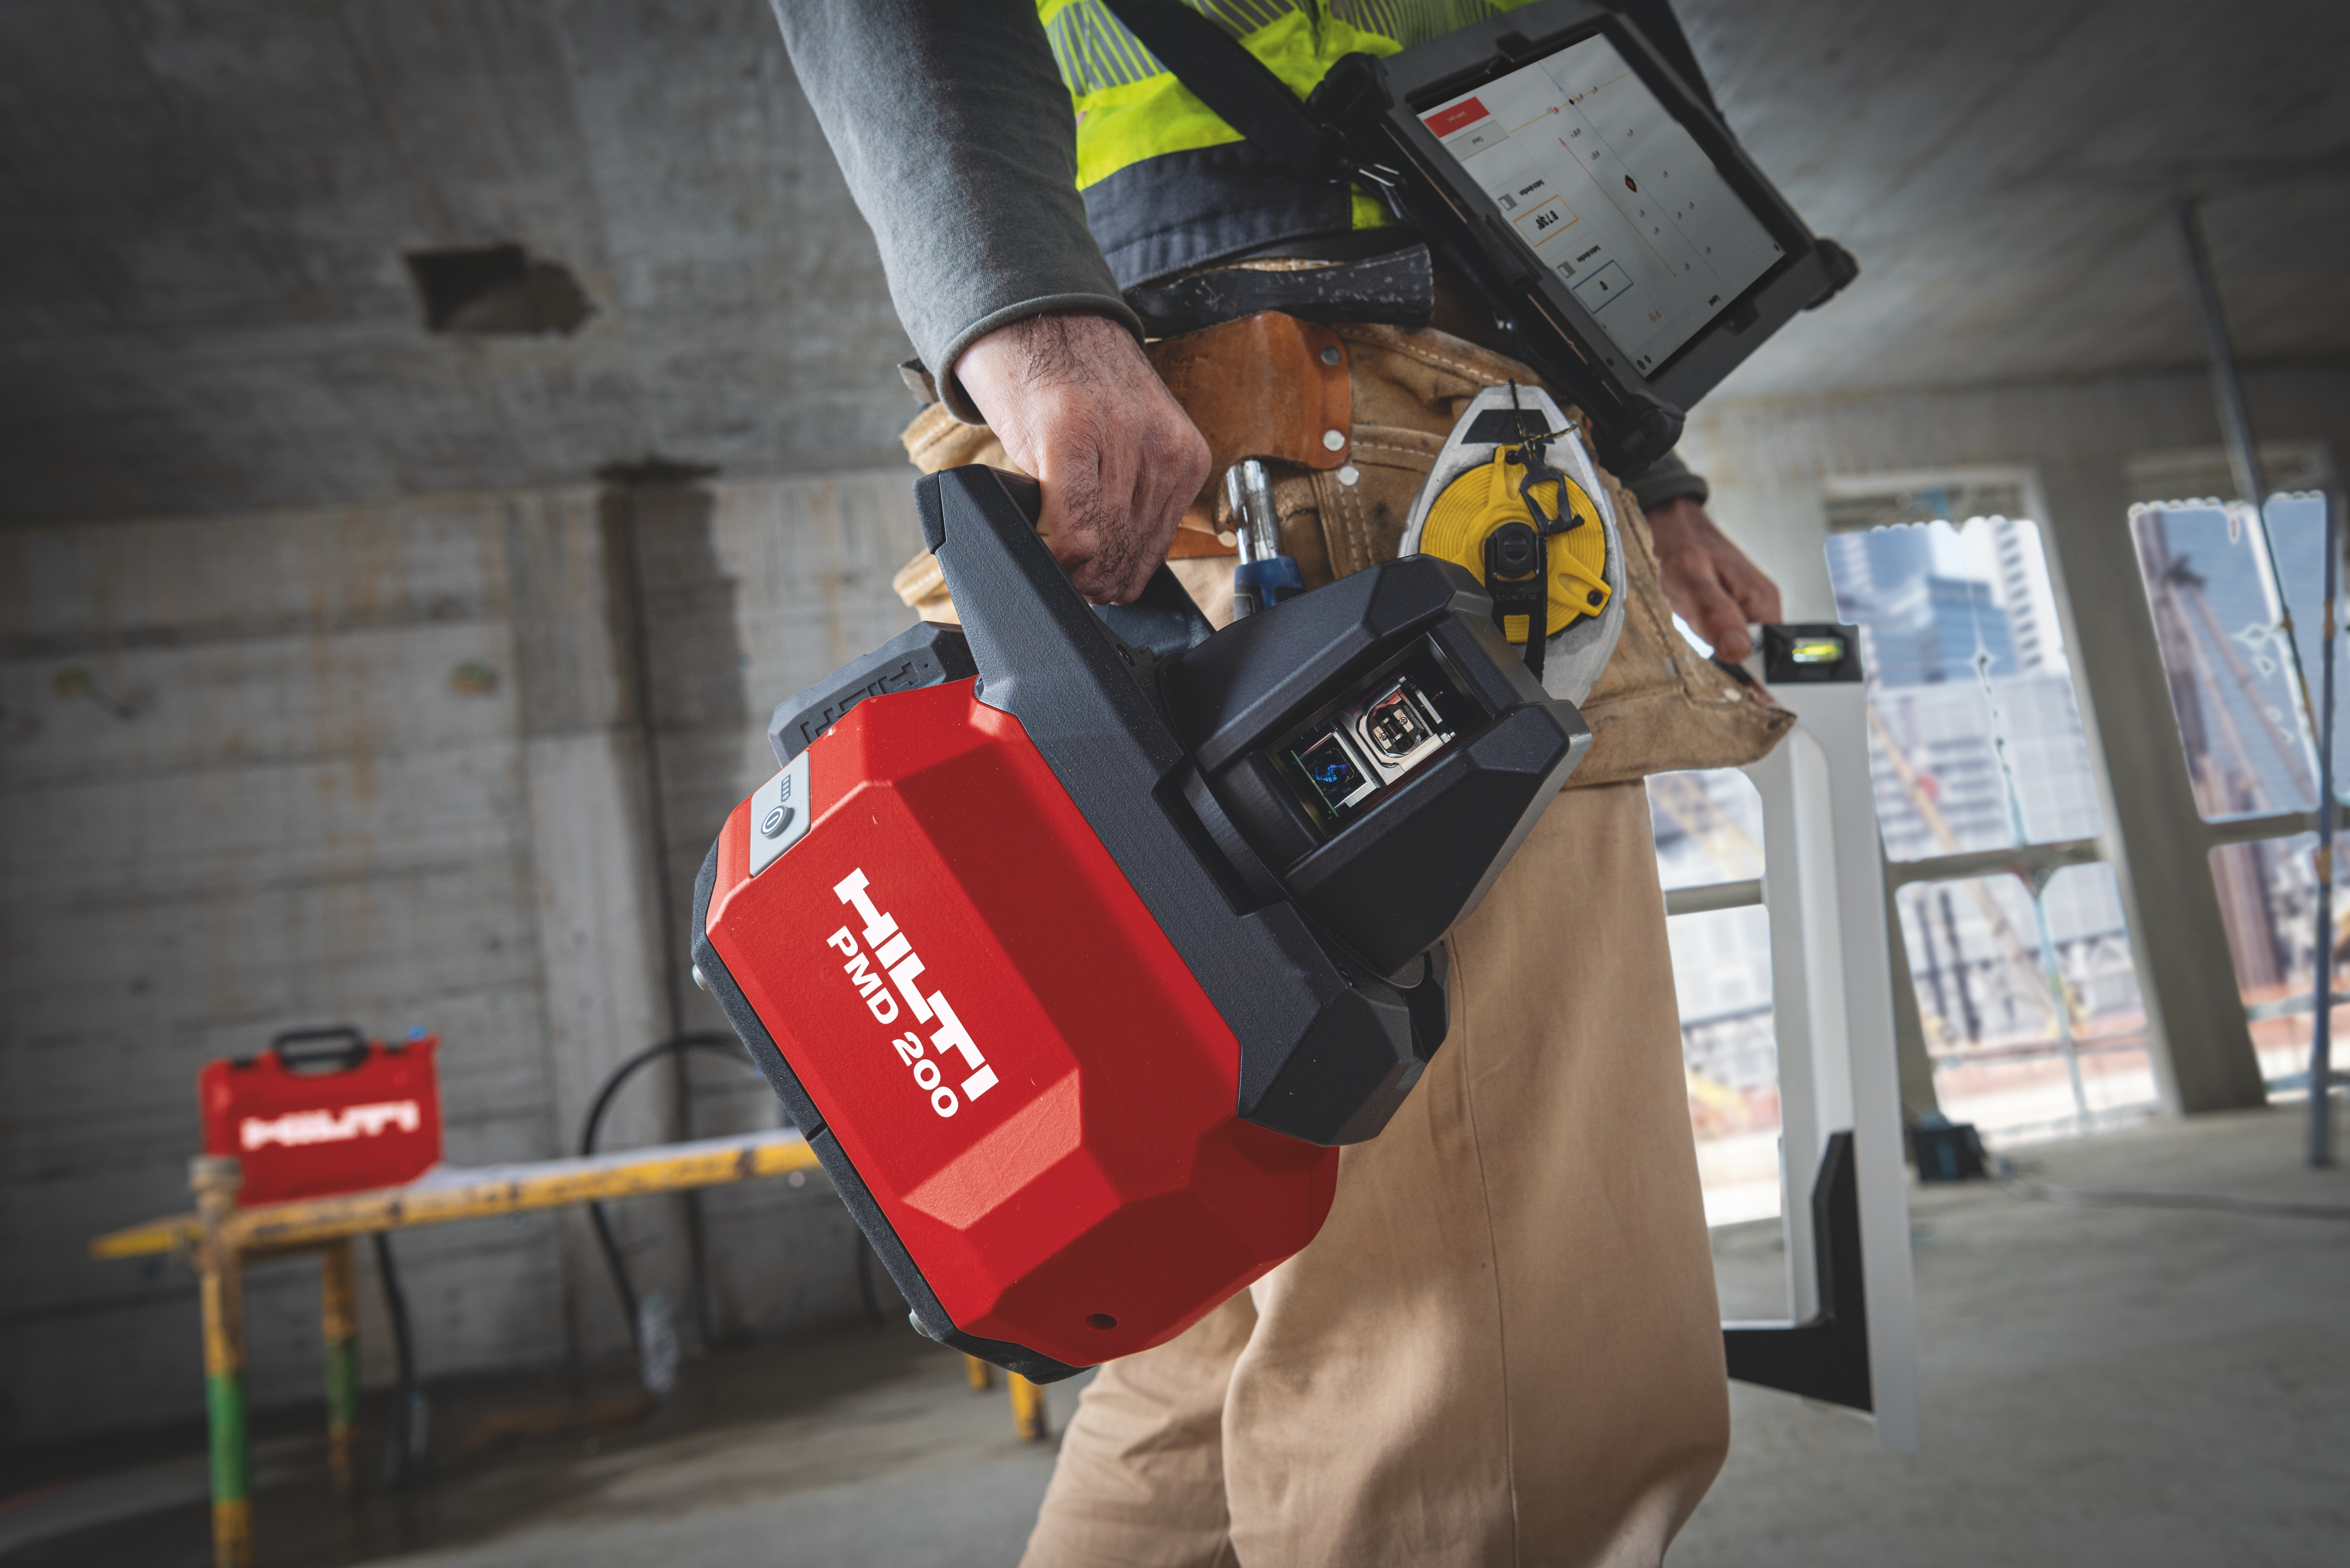 HIlti's cordless PMD 200 laser tool provides the ideal bridge between analogue and digital layout.